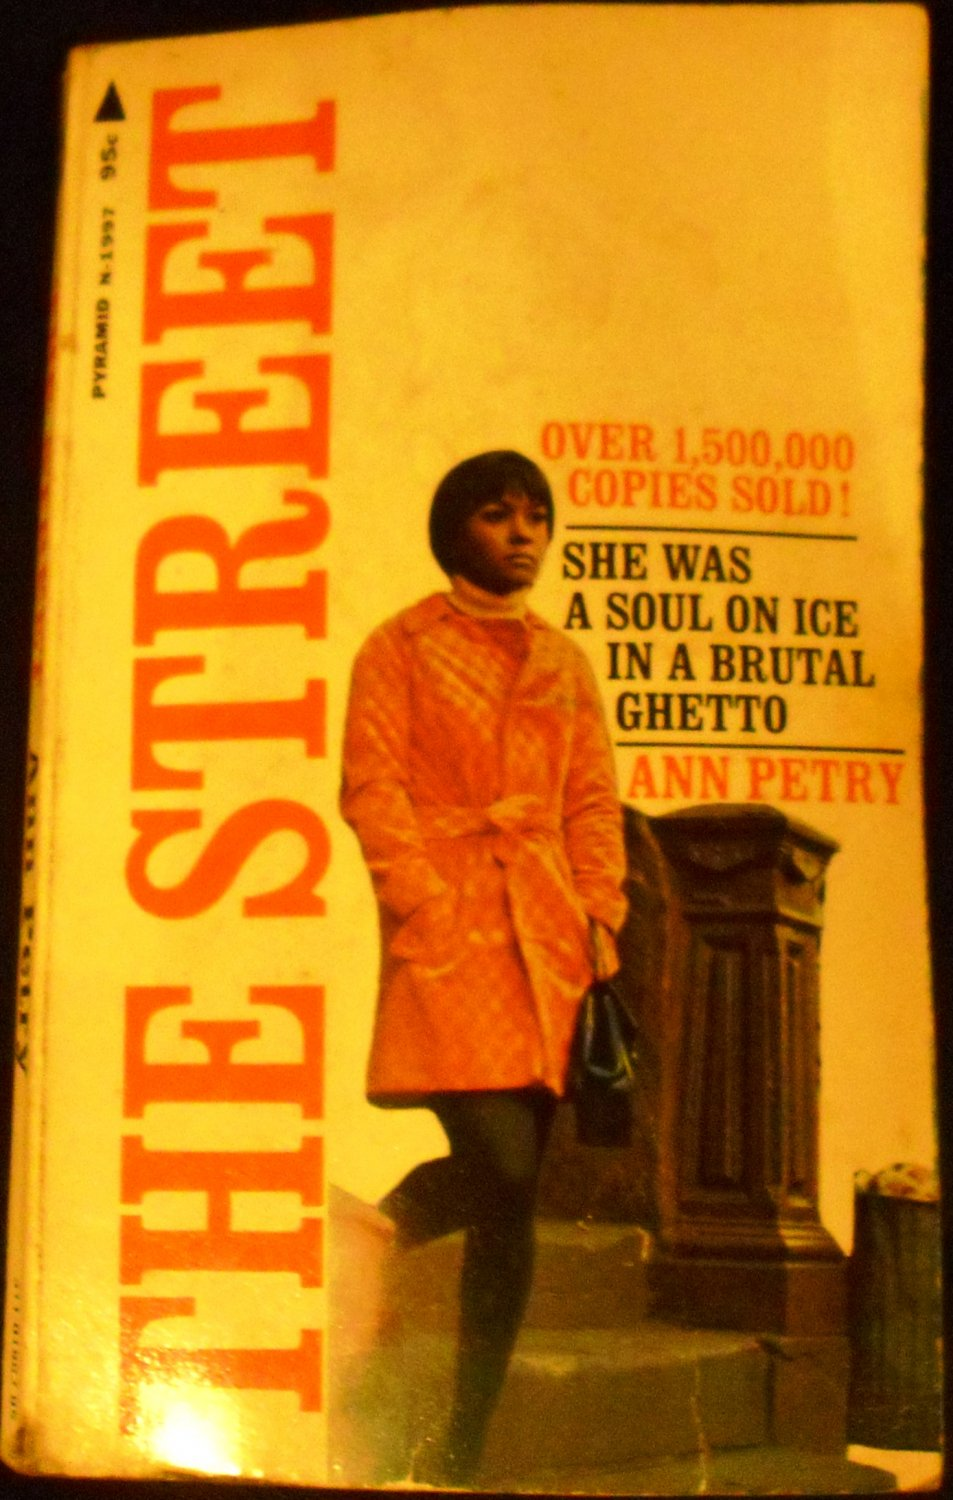 an analysis of the novel the street by ann petry It will be a long time before i forget the experience of reading ann petry's the street a vivid analysis of race and class the street is a novel in the.